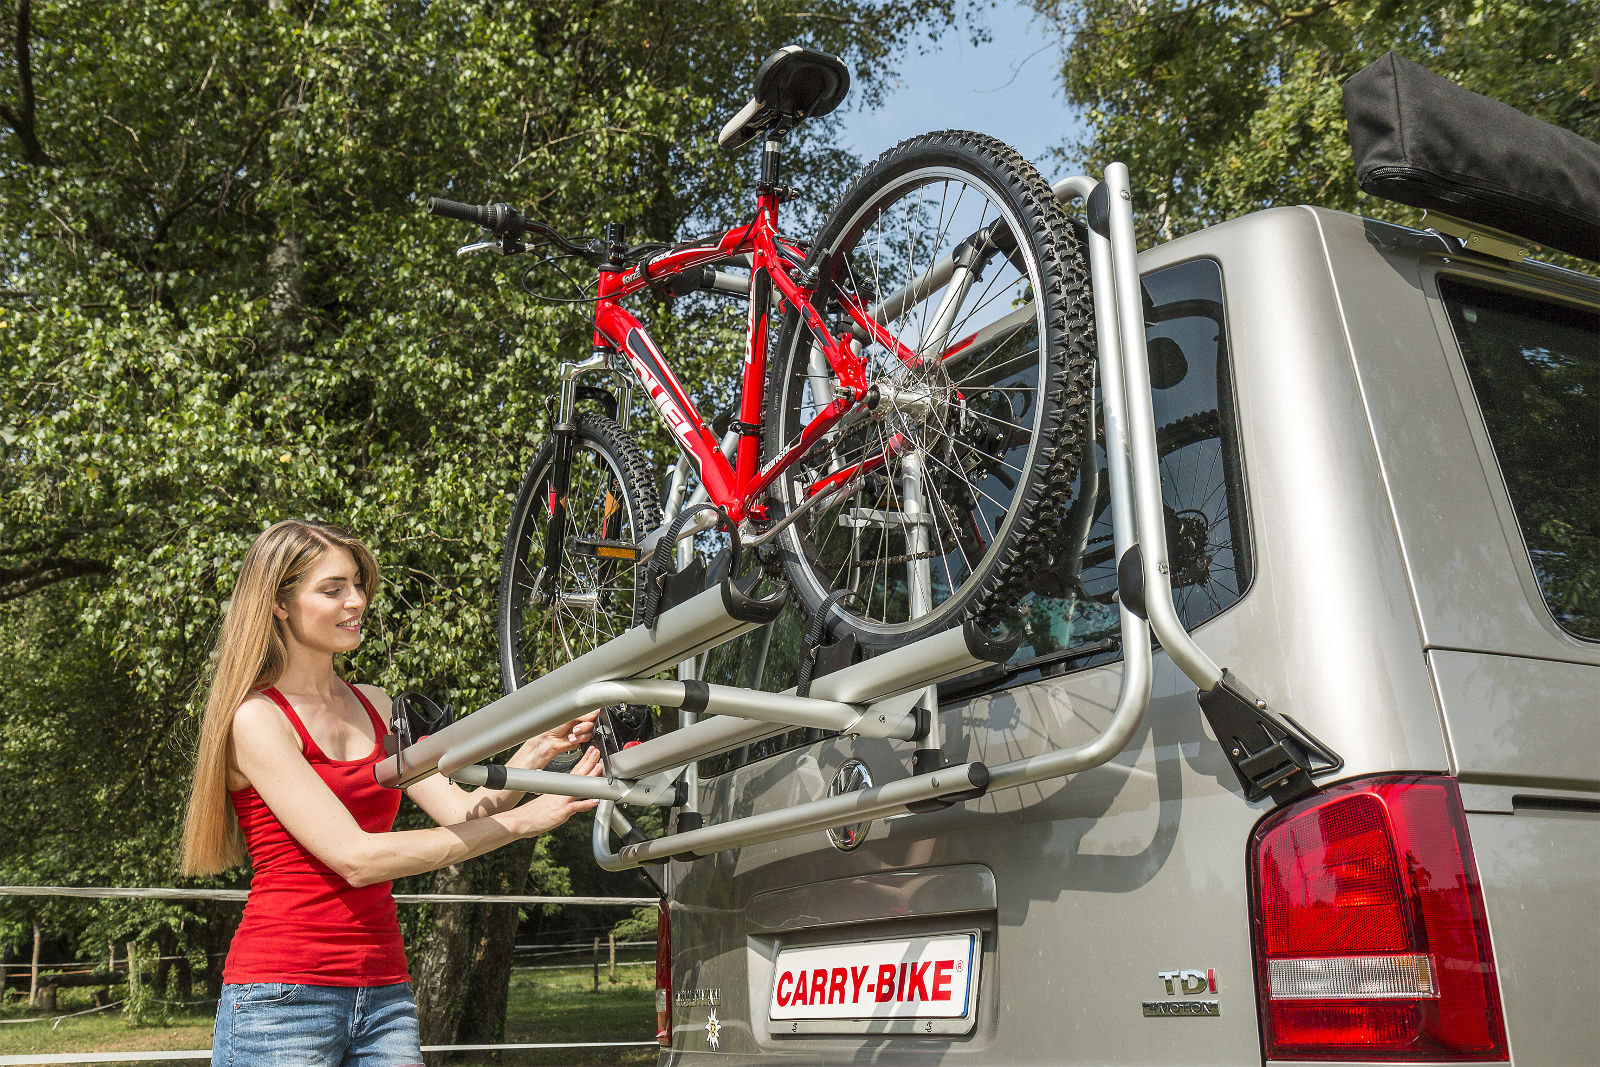 Fiamma Carry Bike T5 Pro sits above number plate and vehicle lights